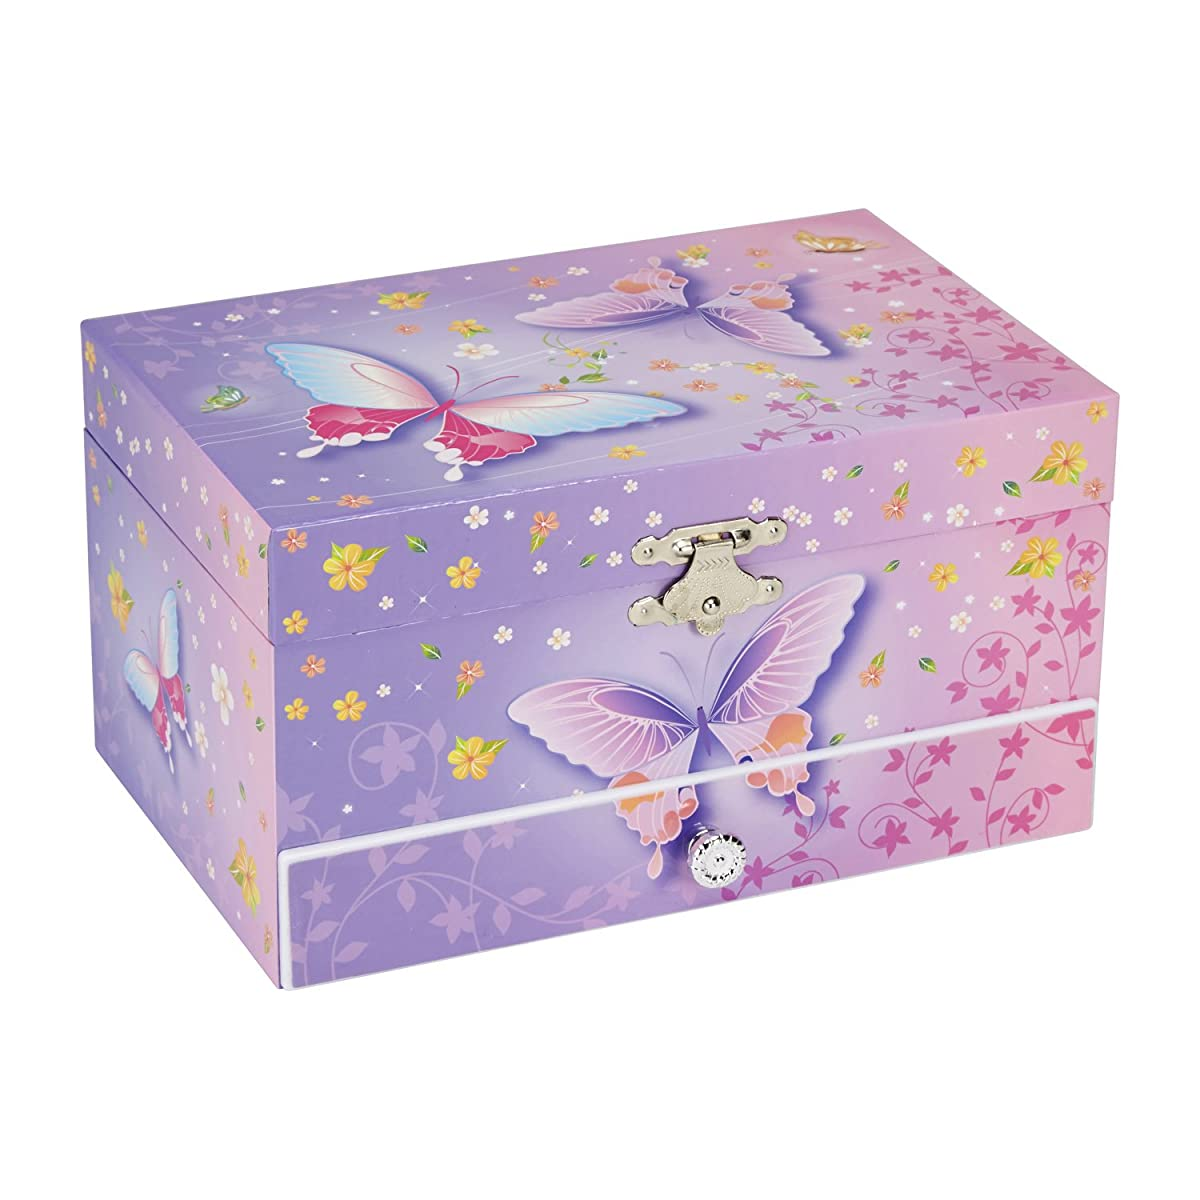 Pink Storage Bins Girls Flower Drawers Chest Dresser: JewelKeeper Butterfly Flower Music Jewelry Box With